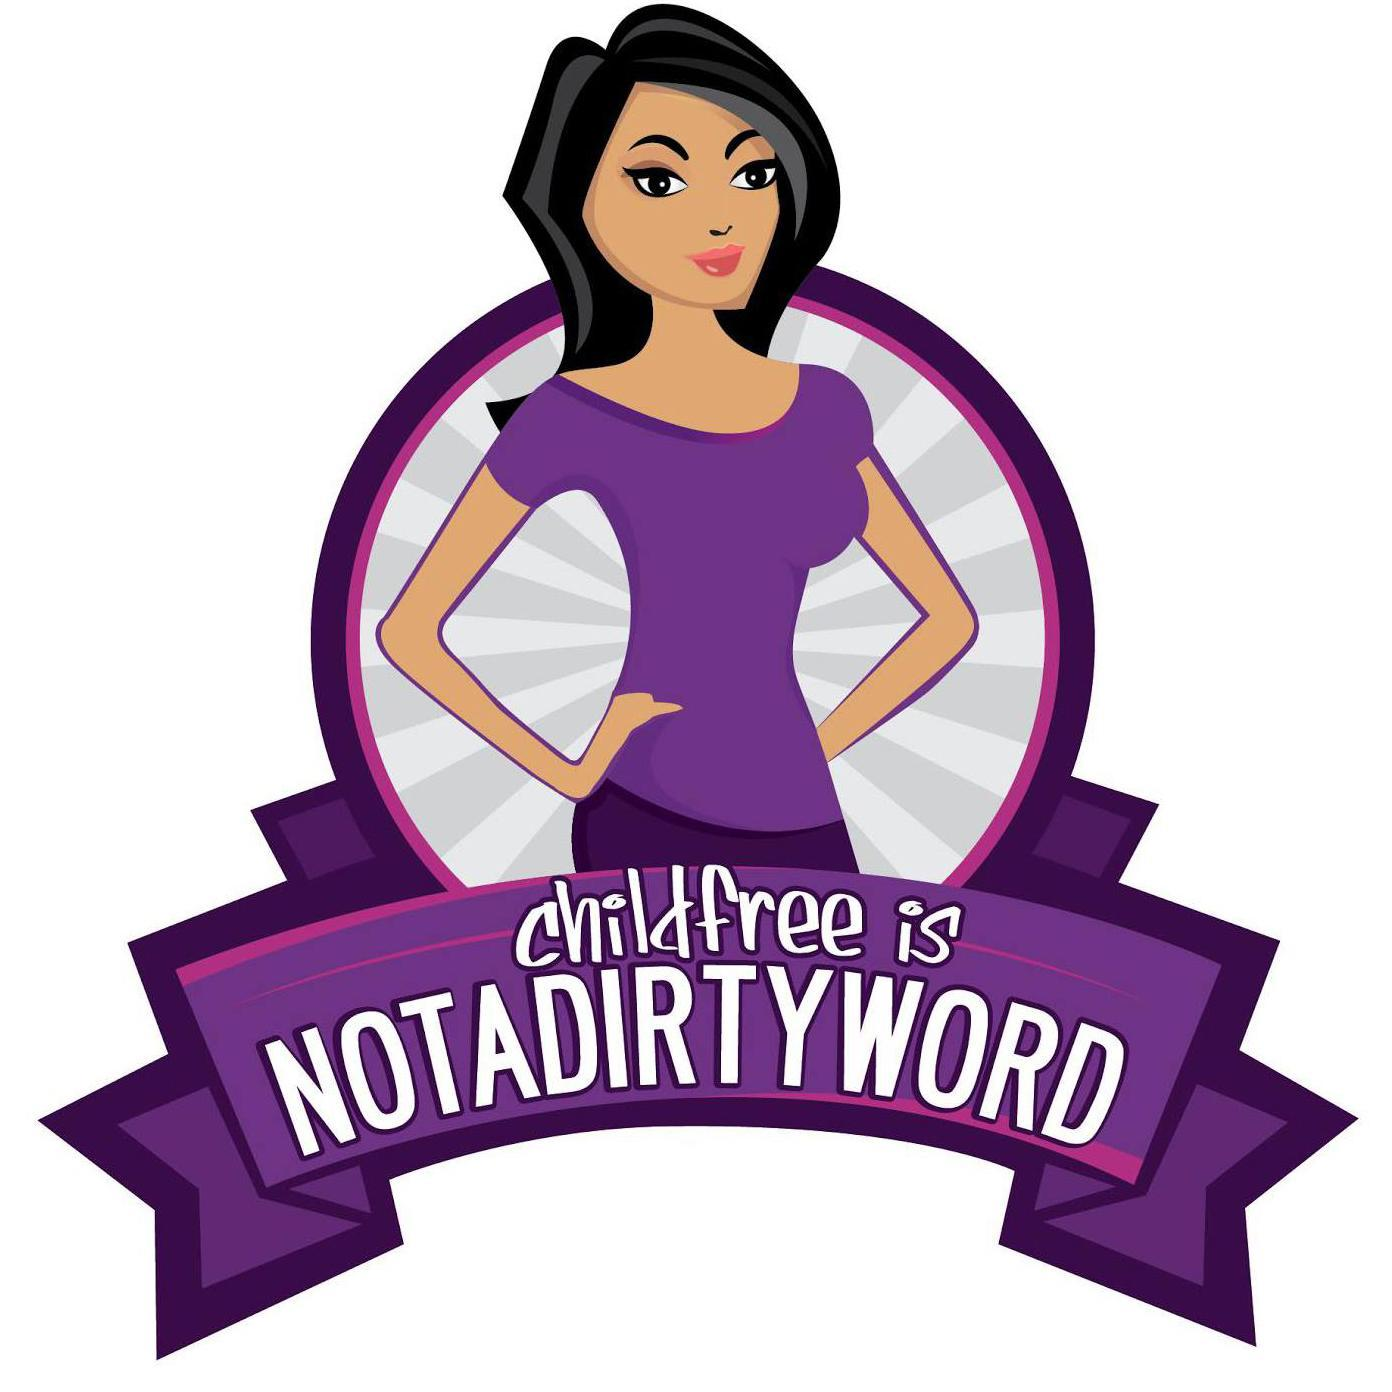 Not a dirty word (@childfreeNDW).